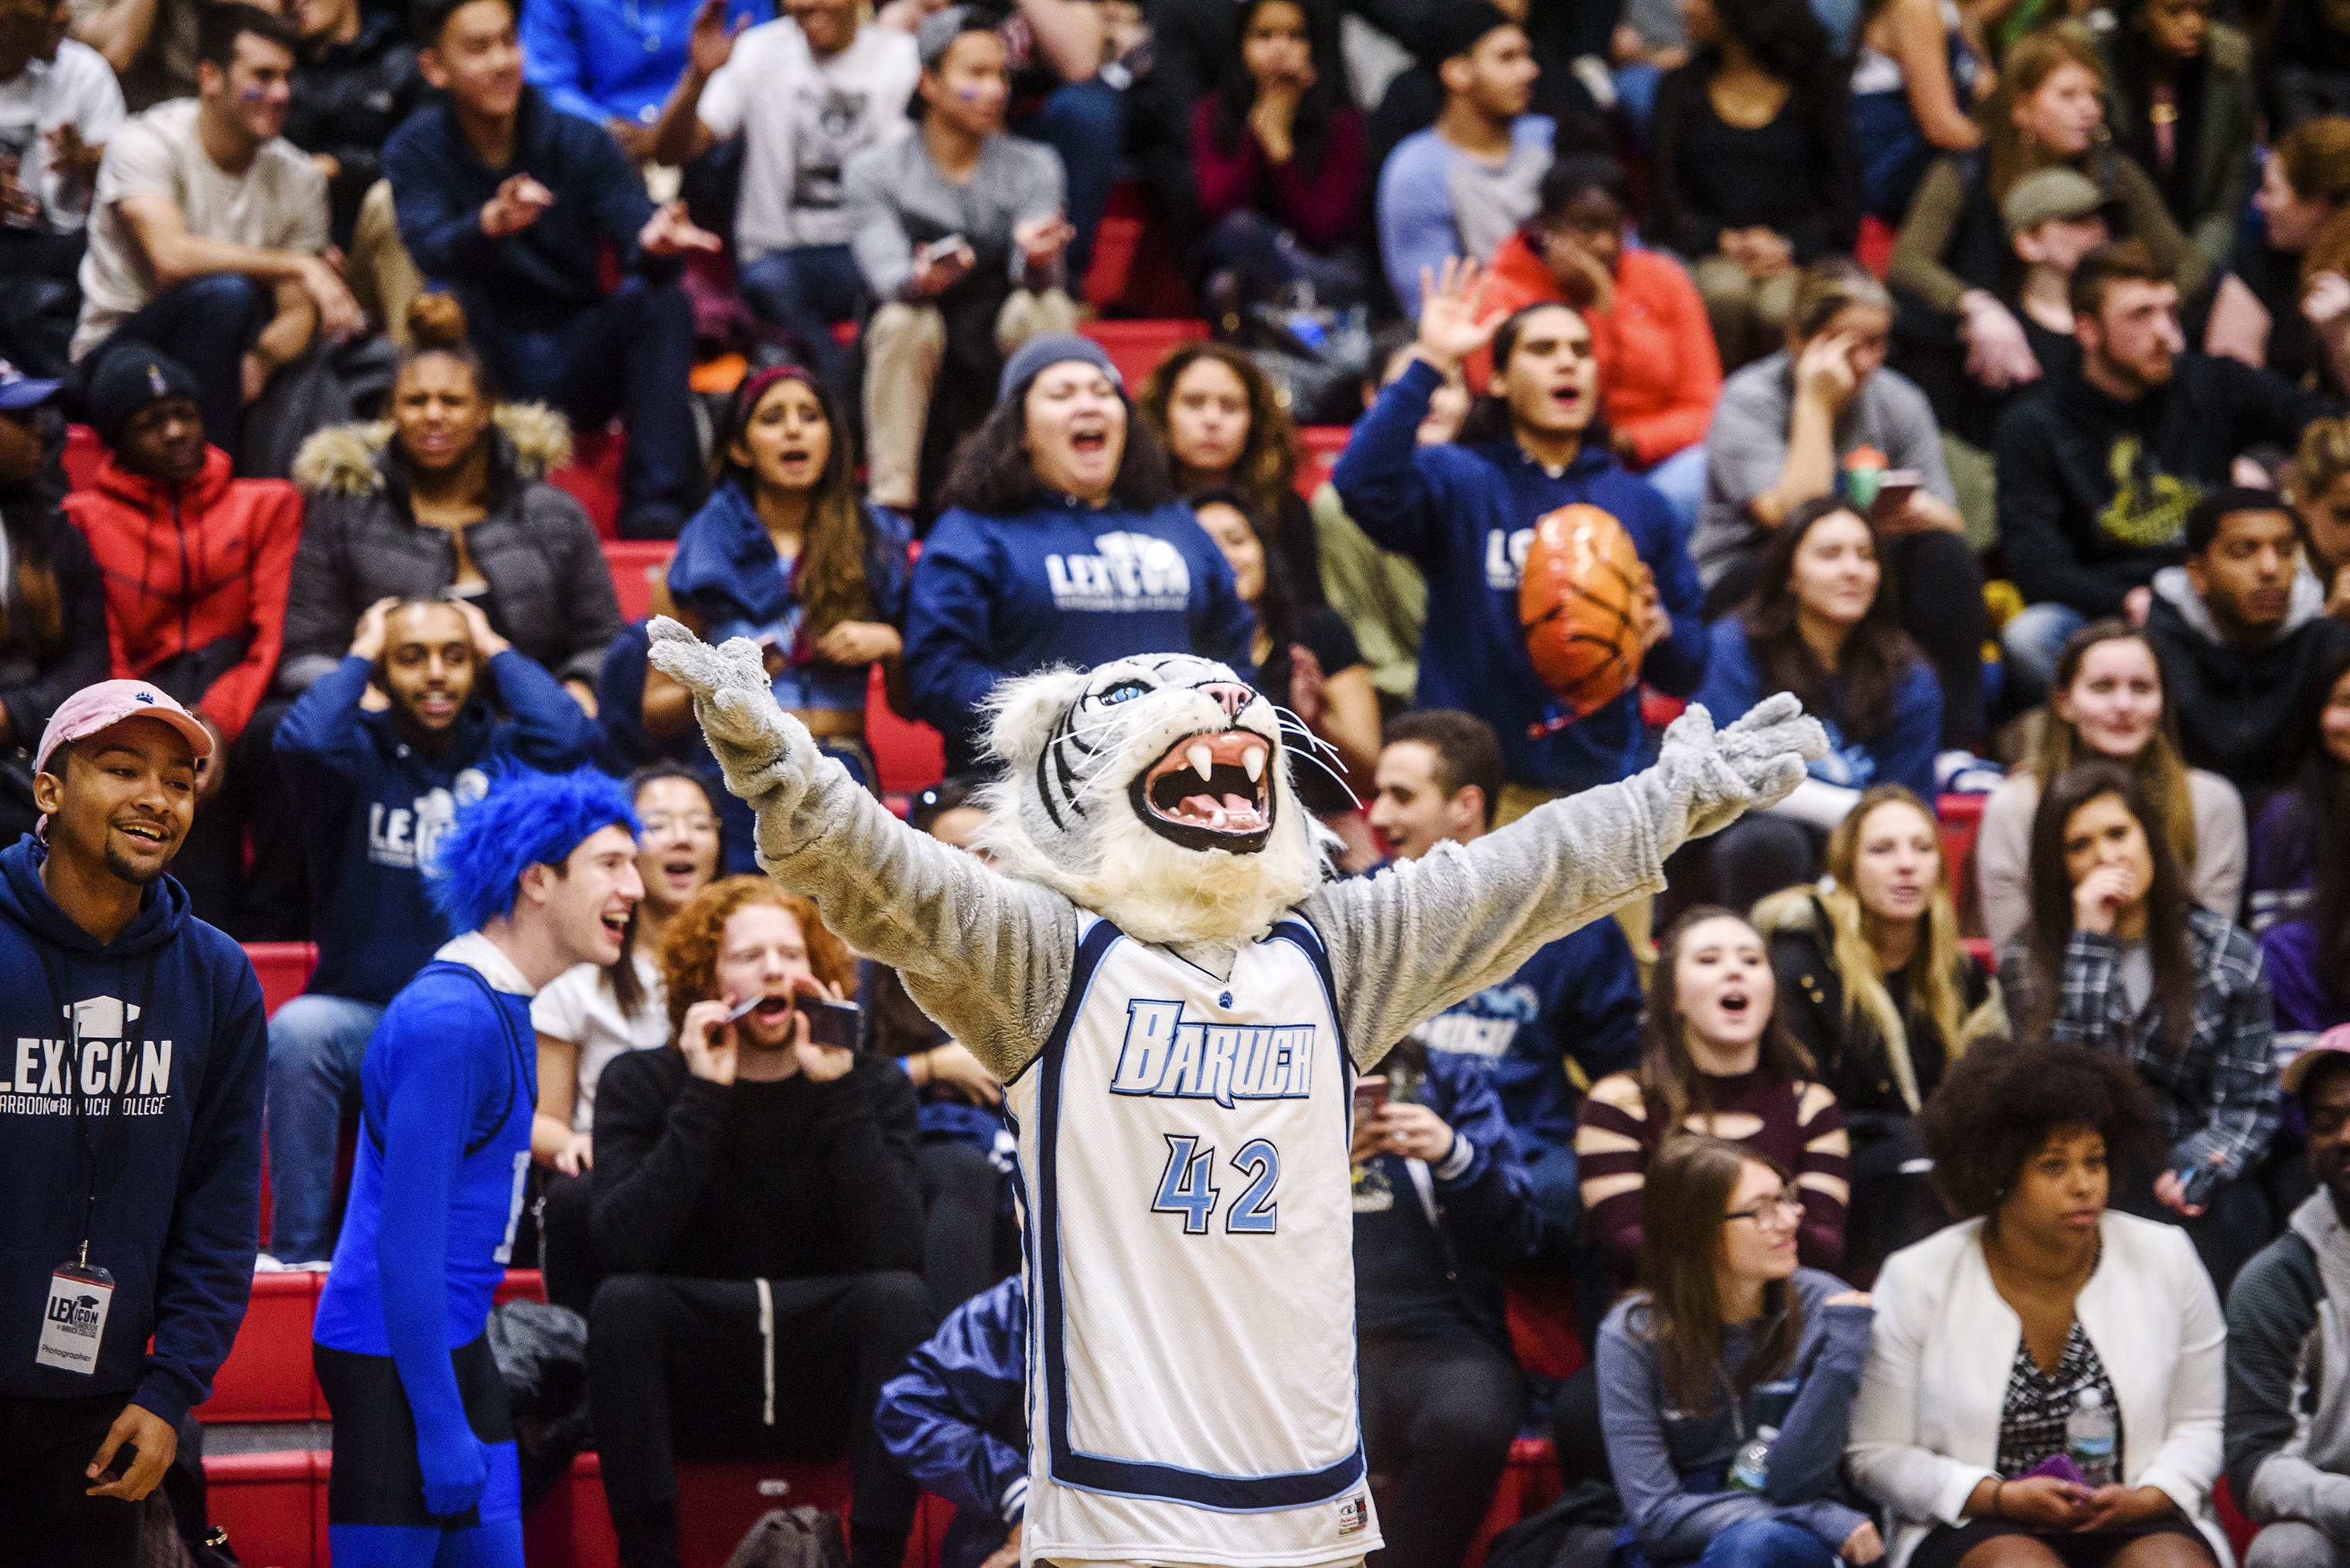 Baruch College's Bearcat cheers on the basketball team.